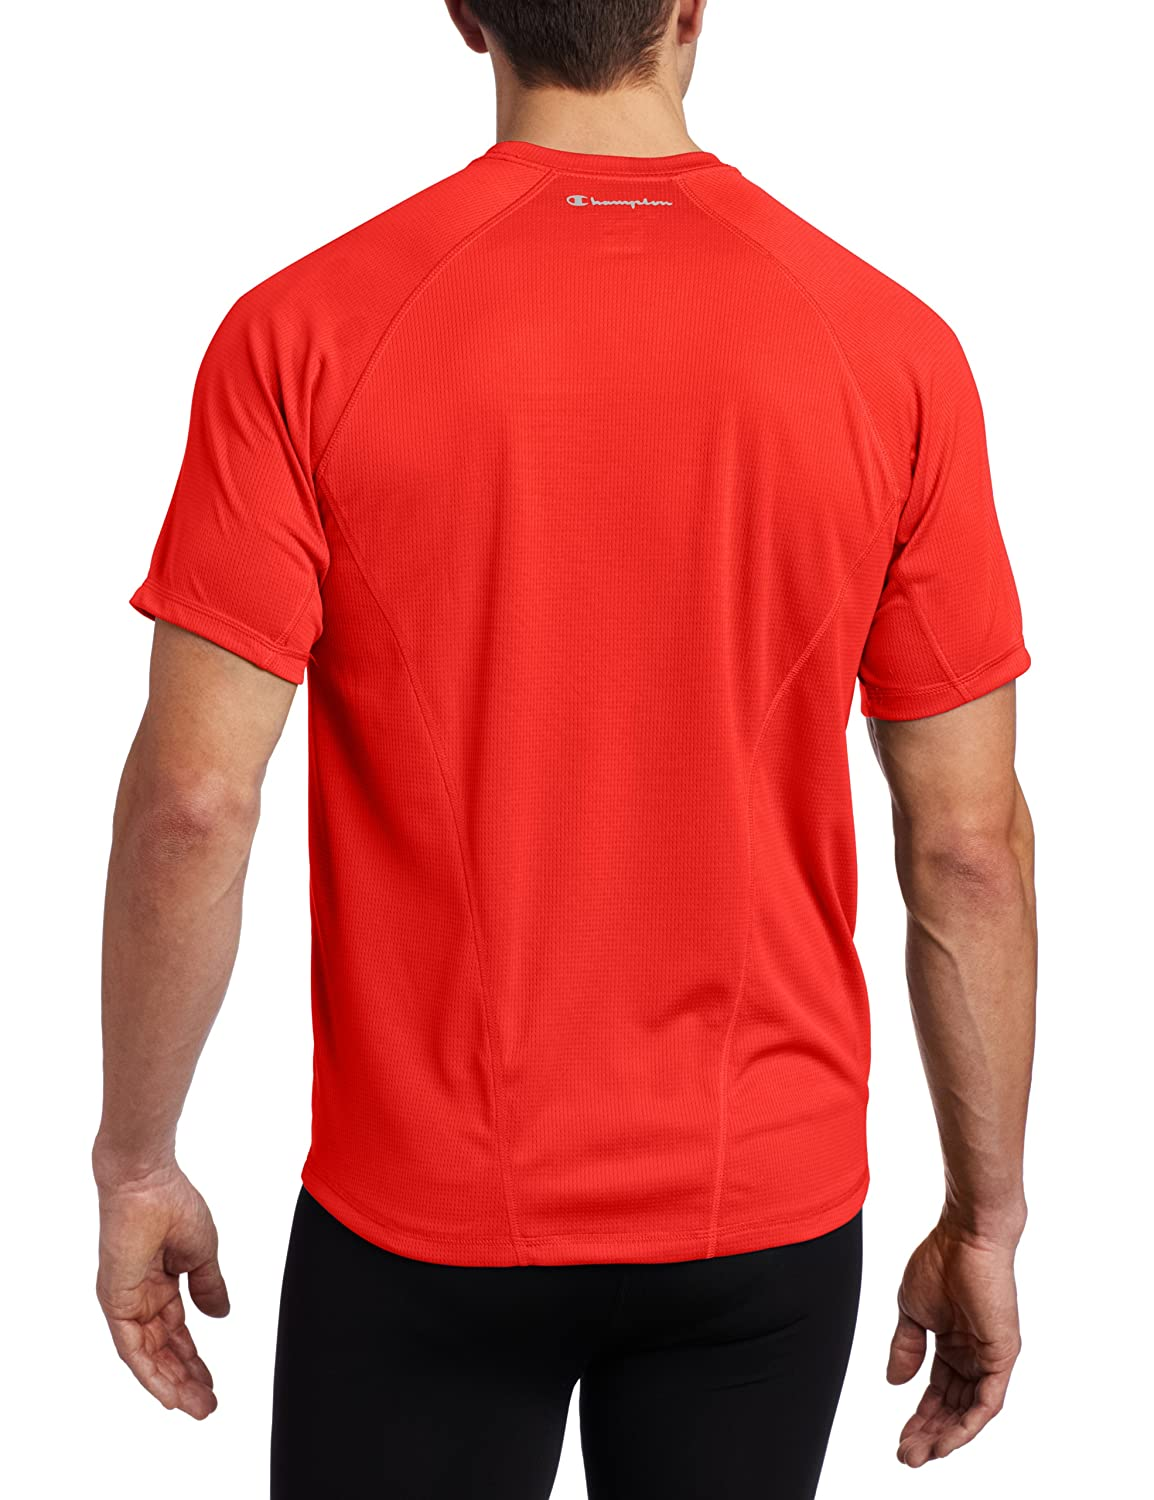 77924f5e2f18 Champion Men s Double Dry Training Tee at Amazon Men s Clothing store   Athletic T Shirts